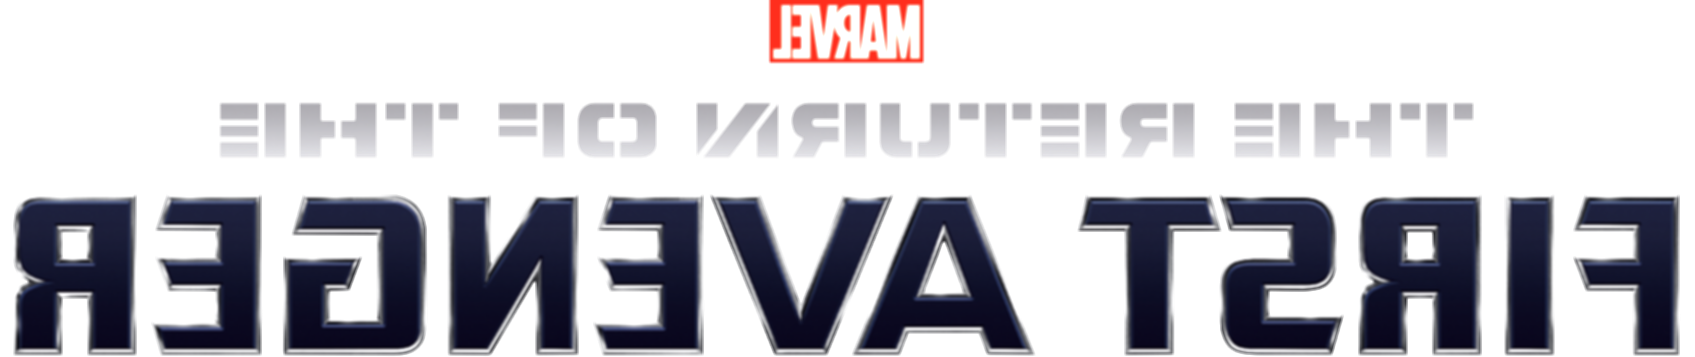 captain america the winter soldier logo png